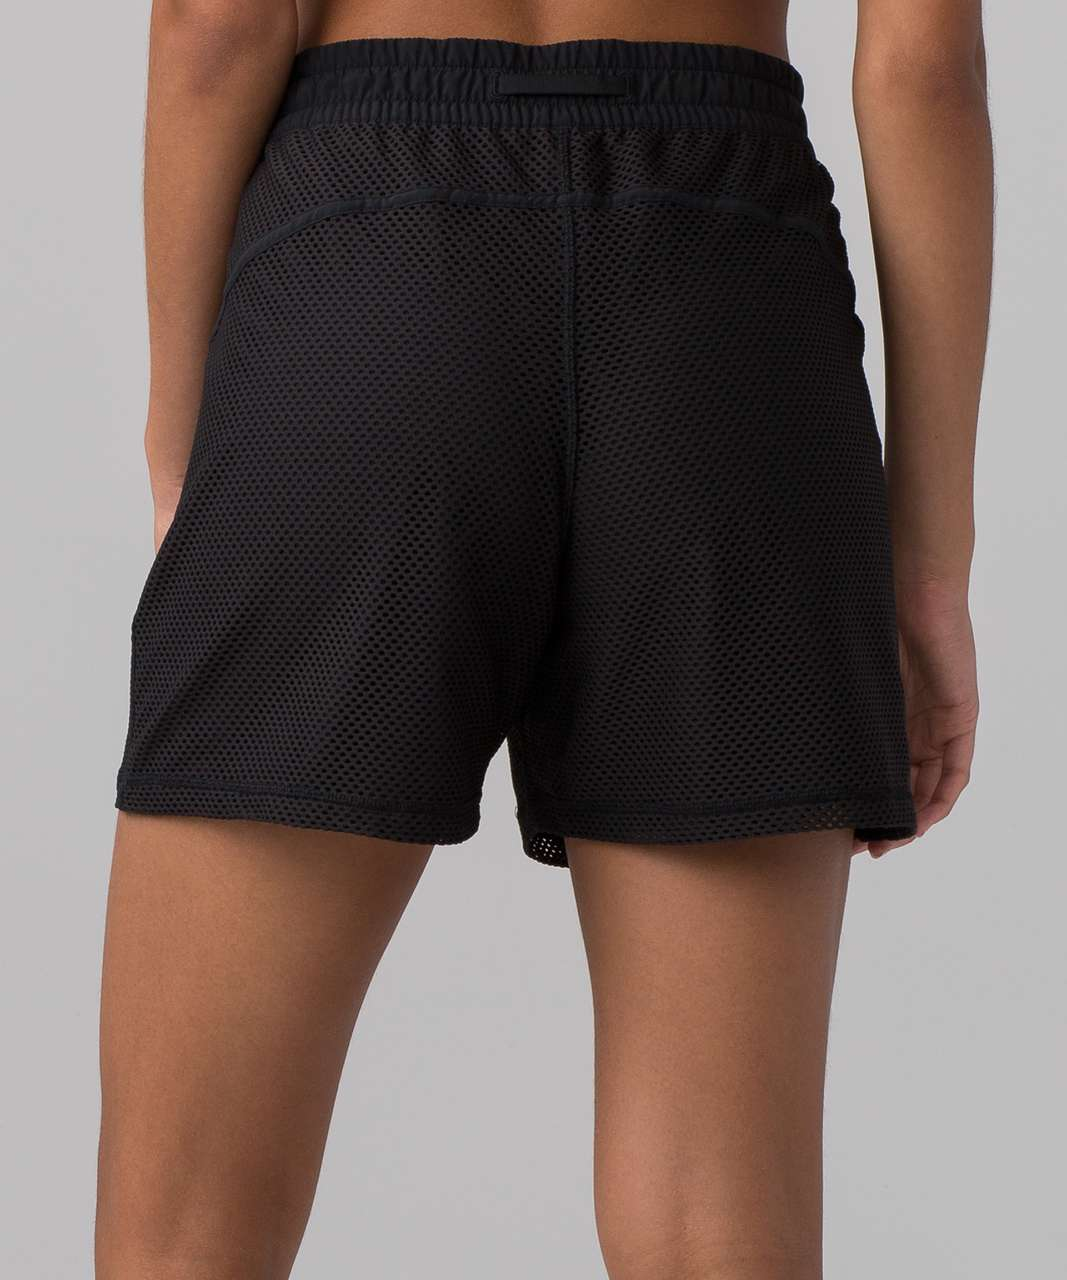 "Lululemon Mesh On Mesh Short (5"") - Black"